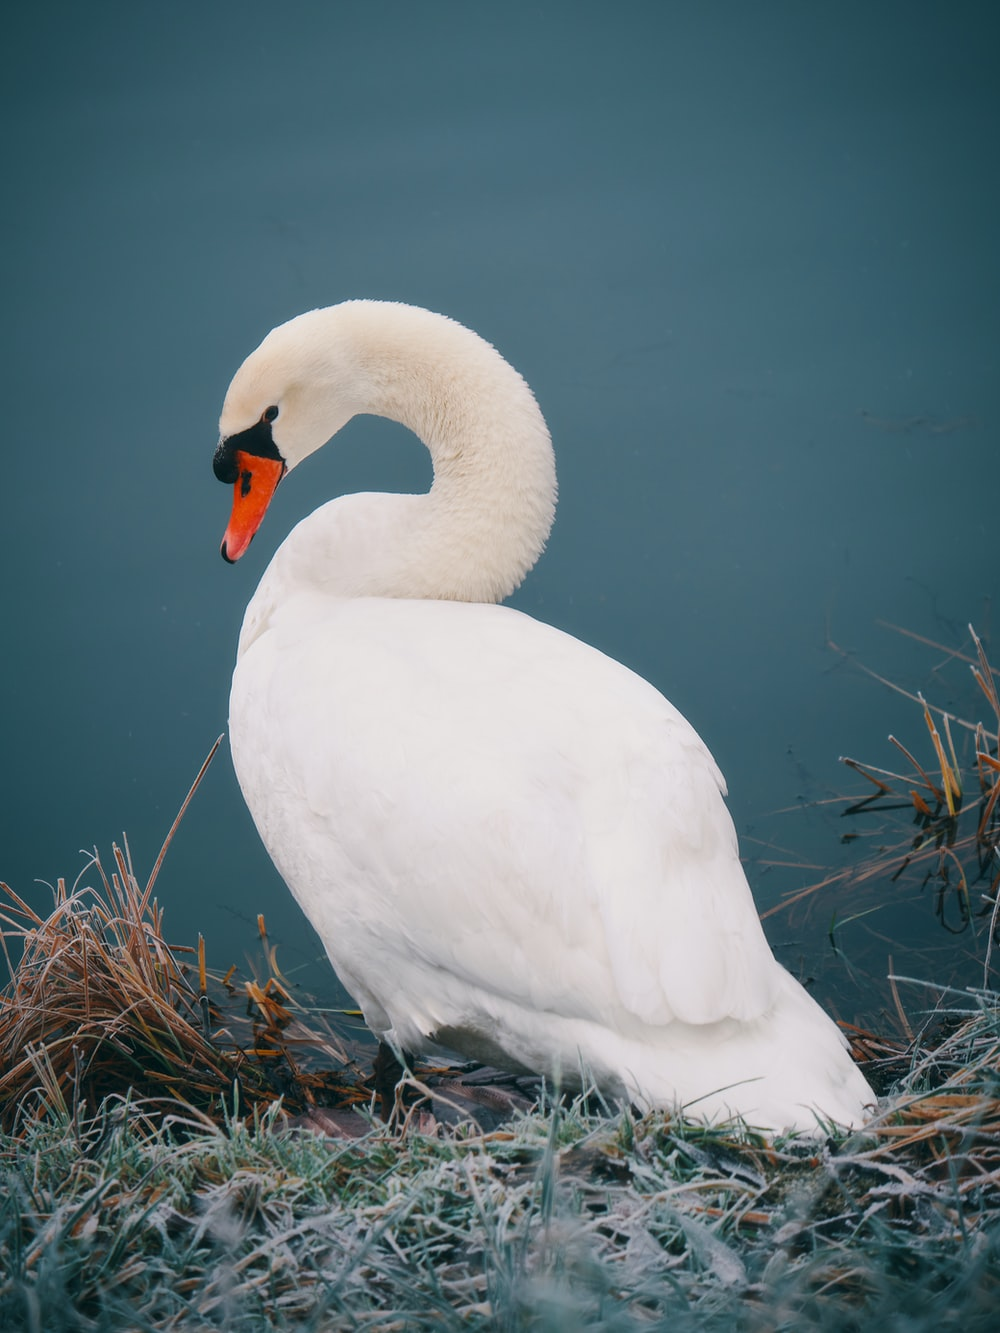 mute swan near body of water